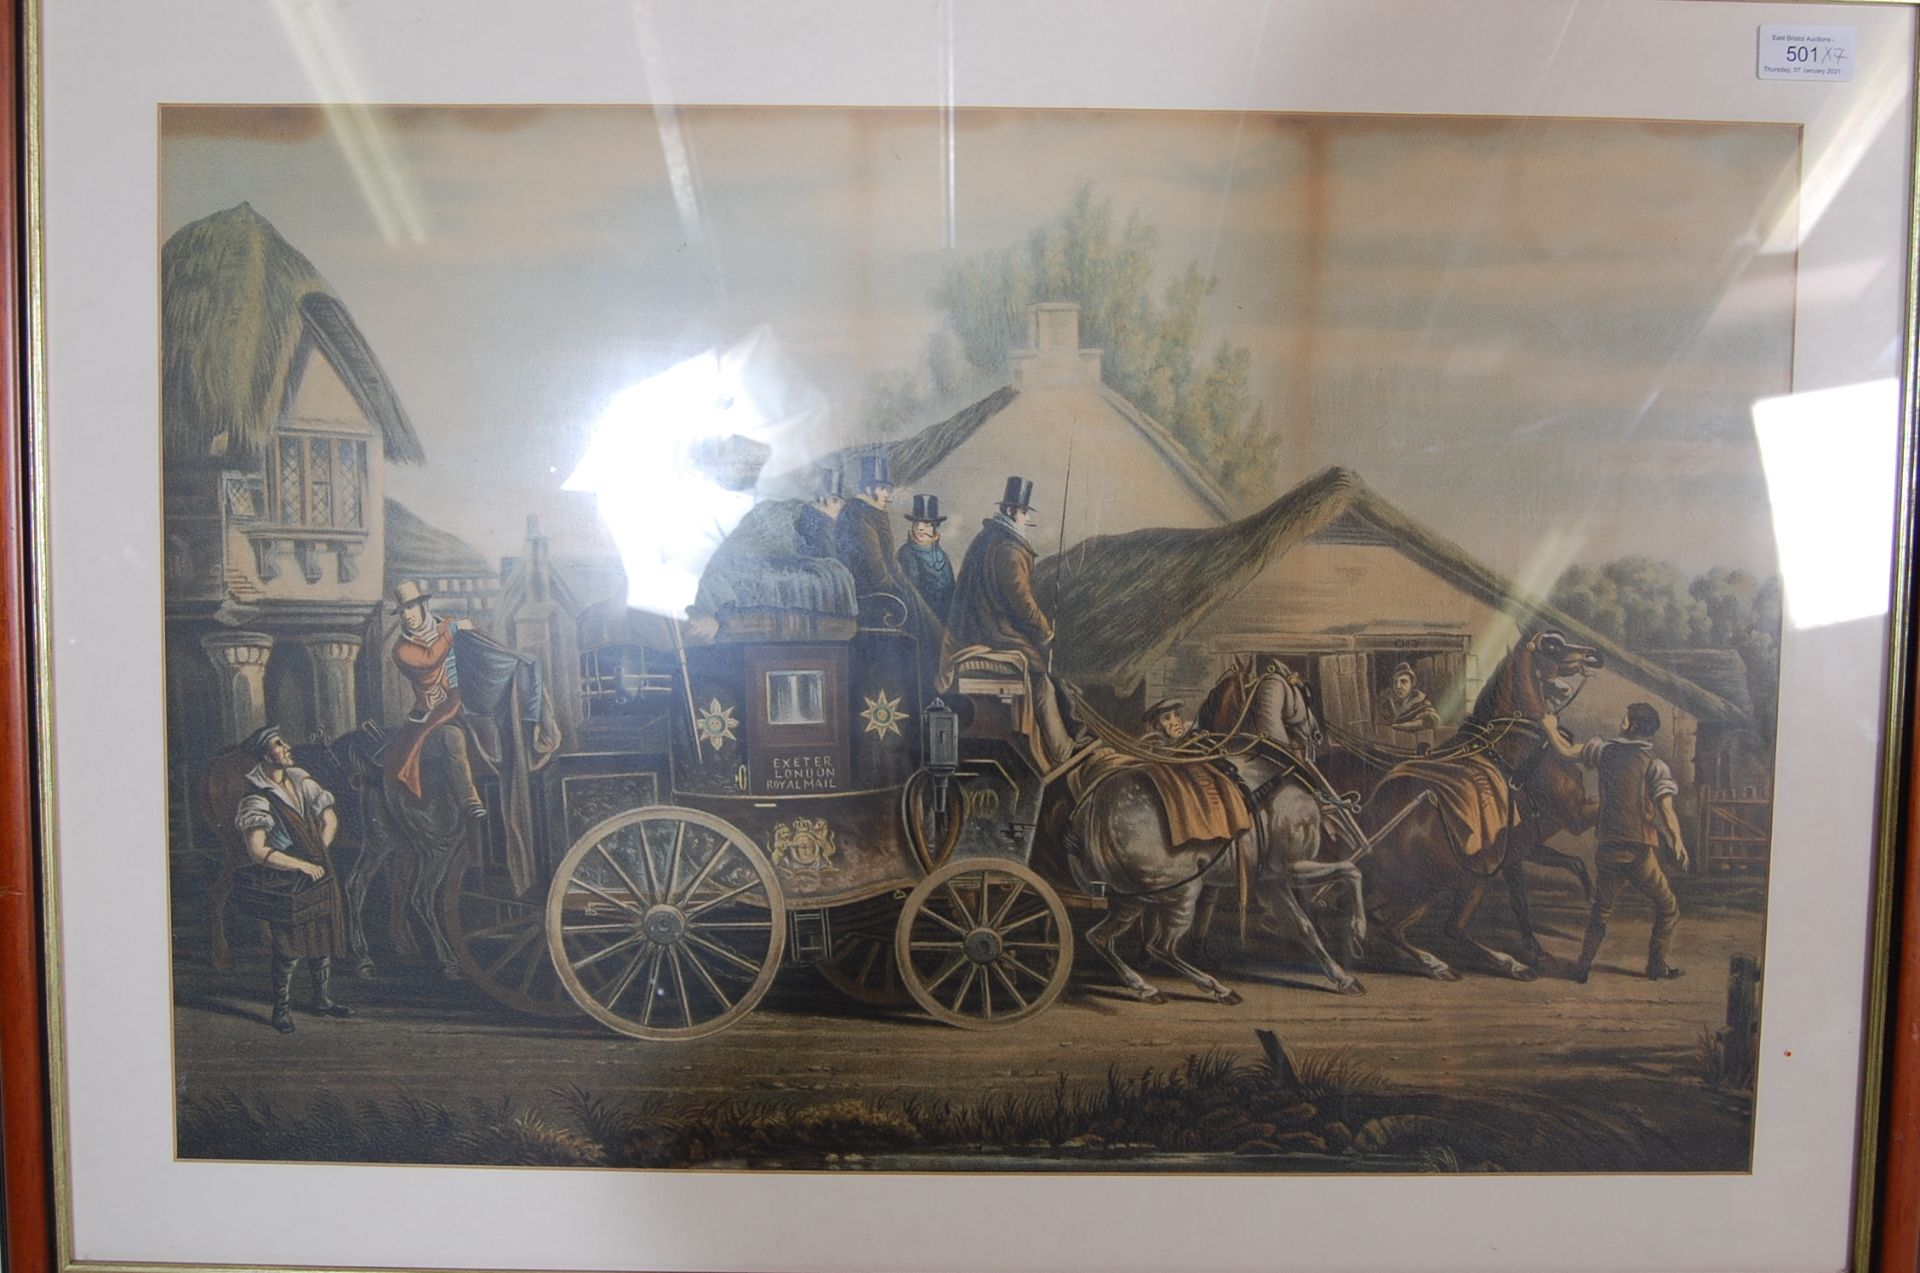 A GROUP OF SEVEN ROYAL MAIL LITHOGRAPH PRINTS DEPICTING 19TH CENTURY ROAYL MAIL COACHES - Image 8 of 13